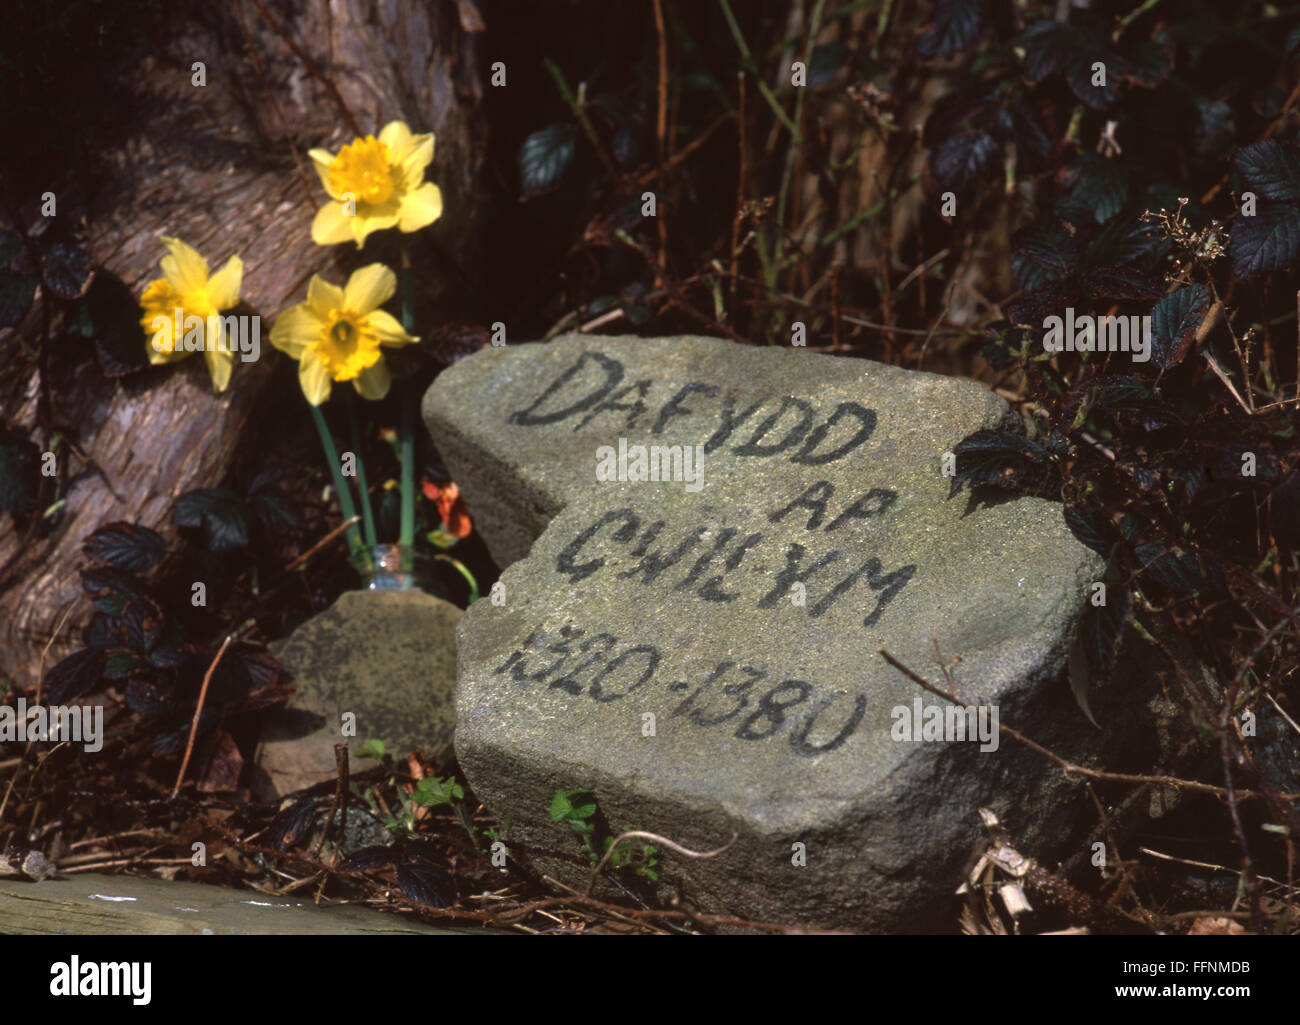 Dafydd ap Gwilym memorial stone Welsh medieval 14th century poet with daffodils under tree in Strata Florida Ystrad - Stock Image